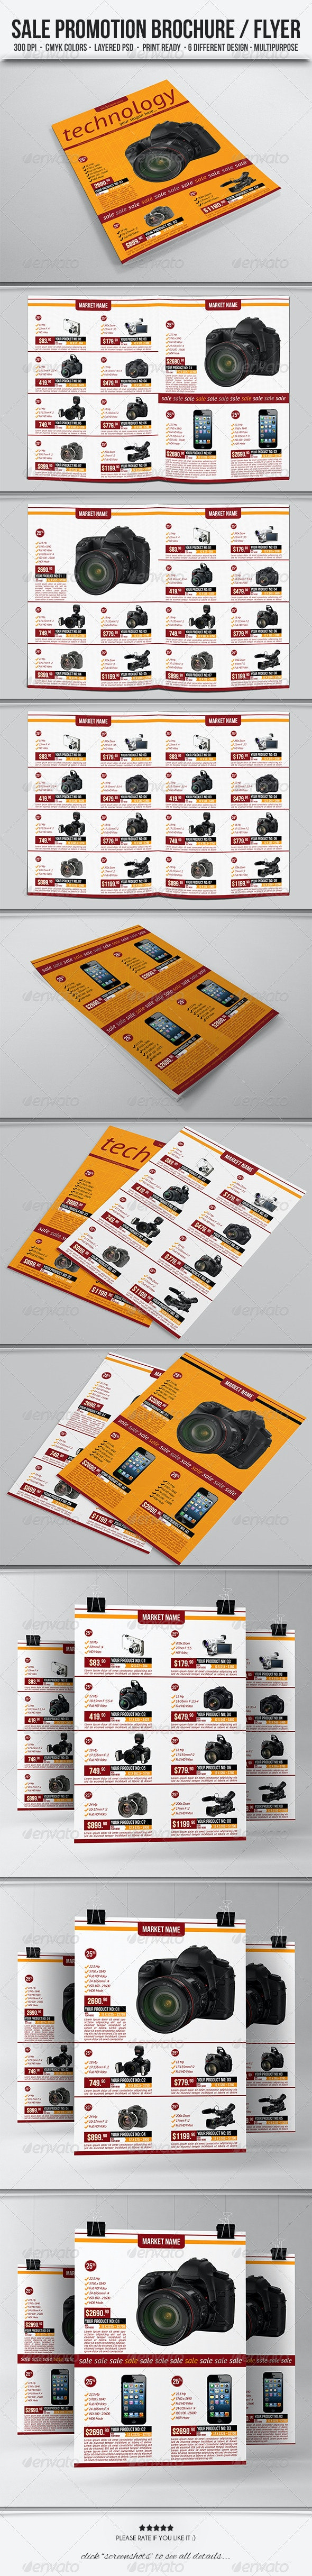 Sale Promotion Brochure/Flyer - Commerce Flyers